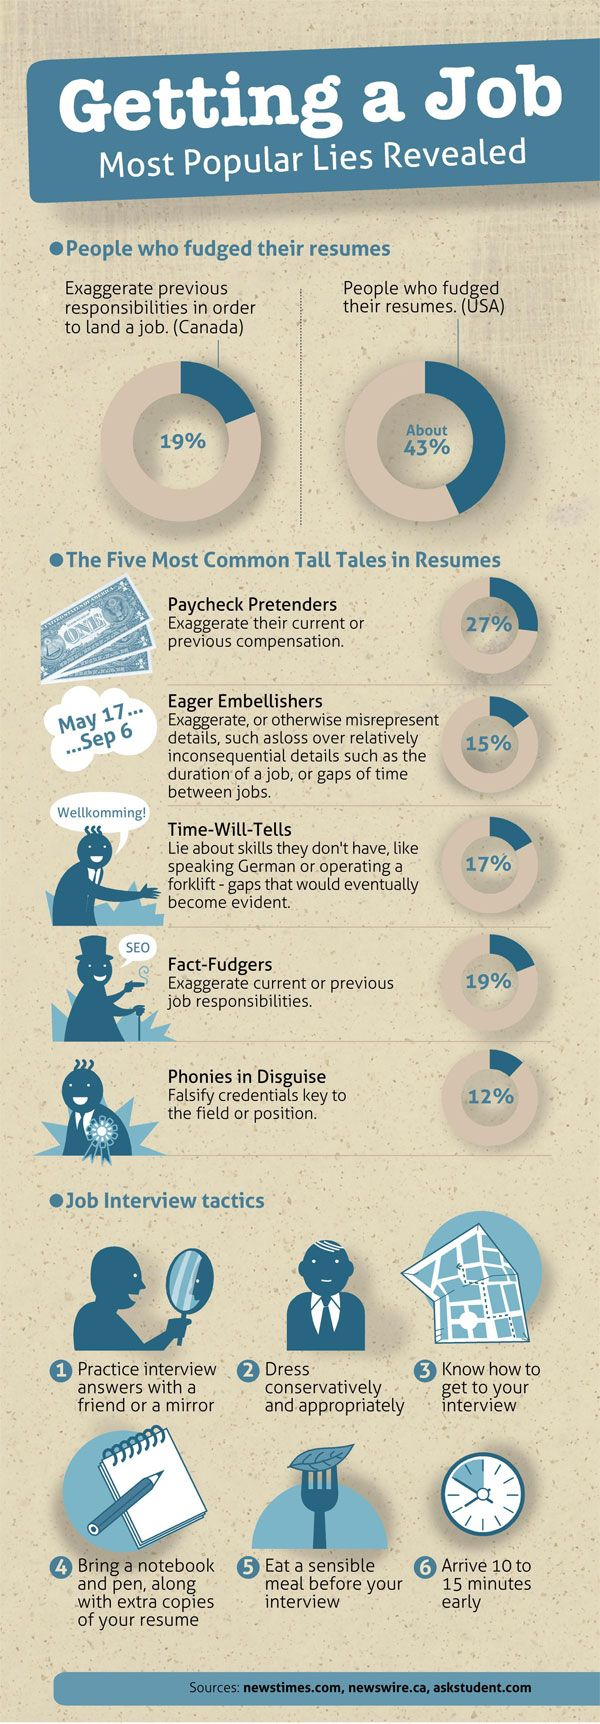 best images about job infographics most popular getting a job most popular lies revealed infographic jobacle com blog